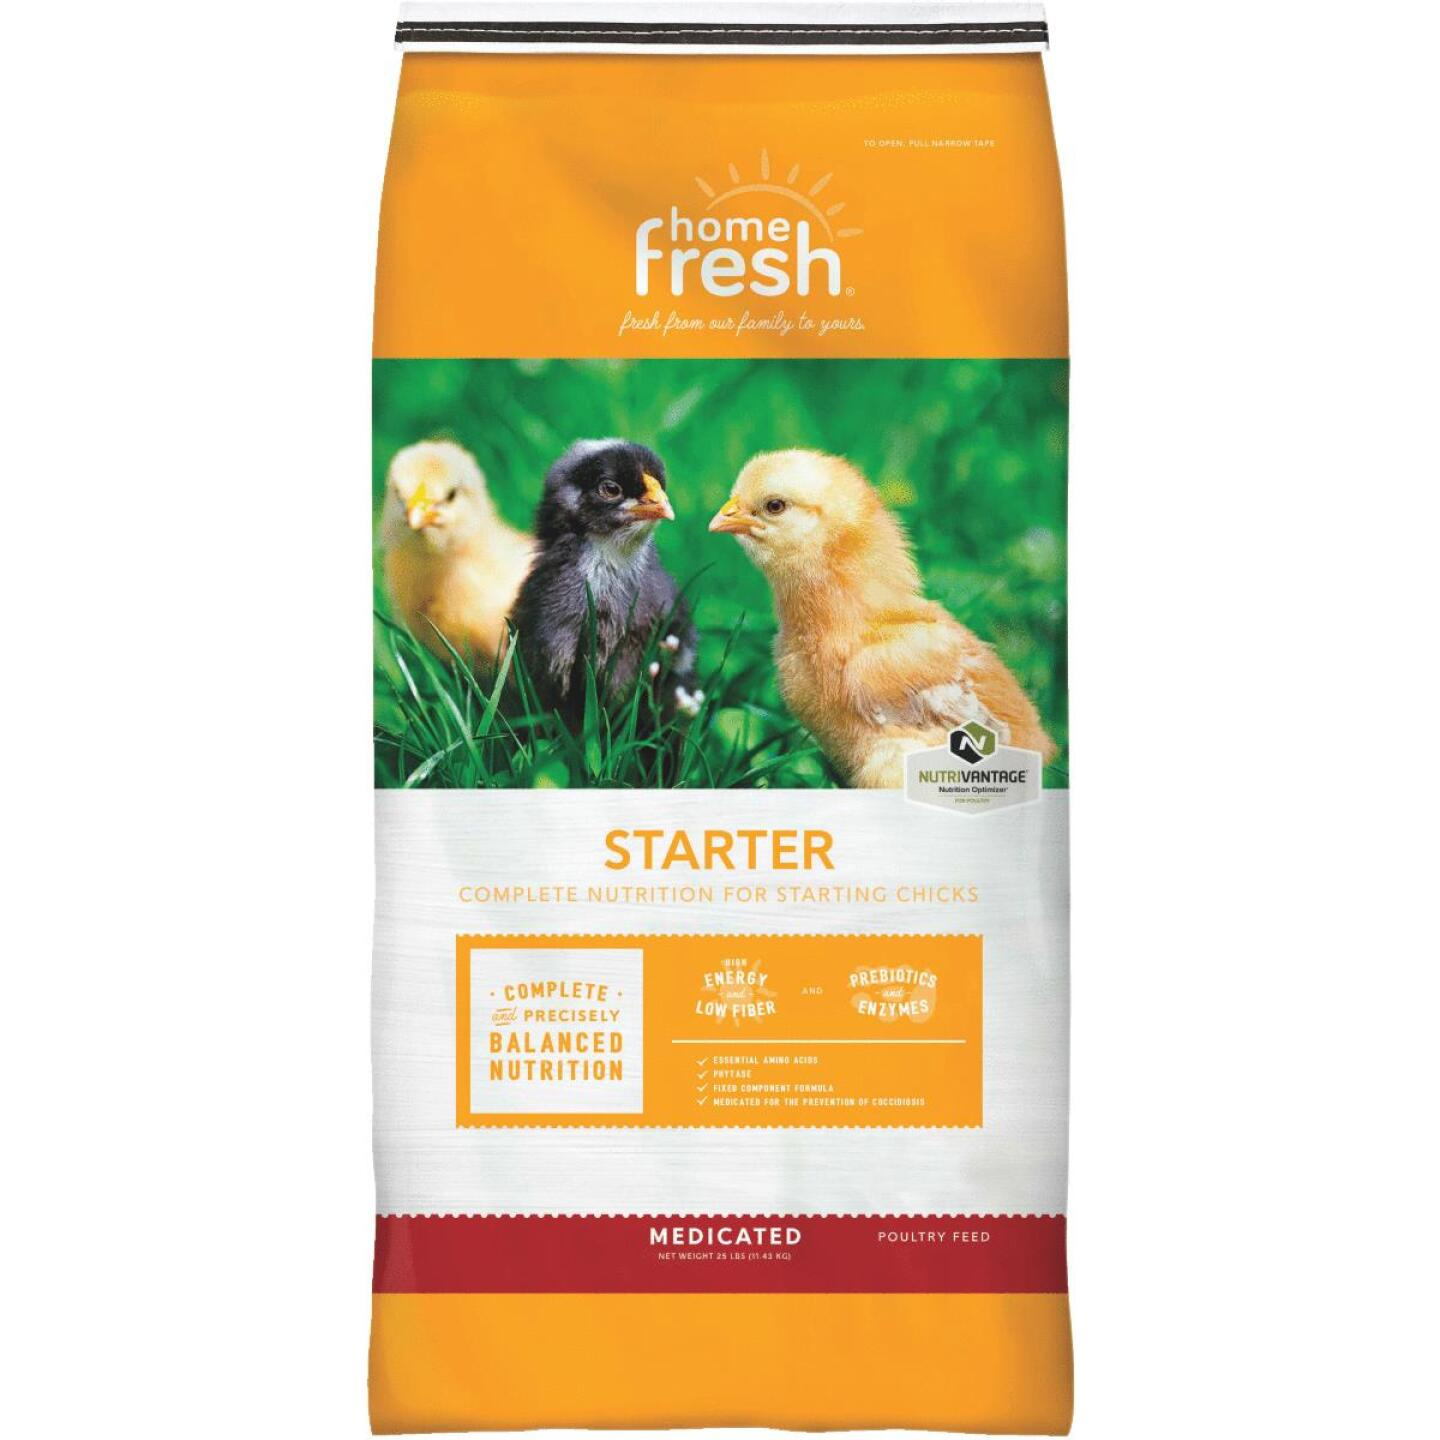 Blue Seal Home Fresh Chicken Starter 25 Lb. Chicken Feed Image 1